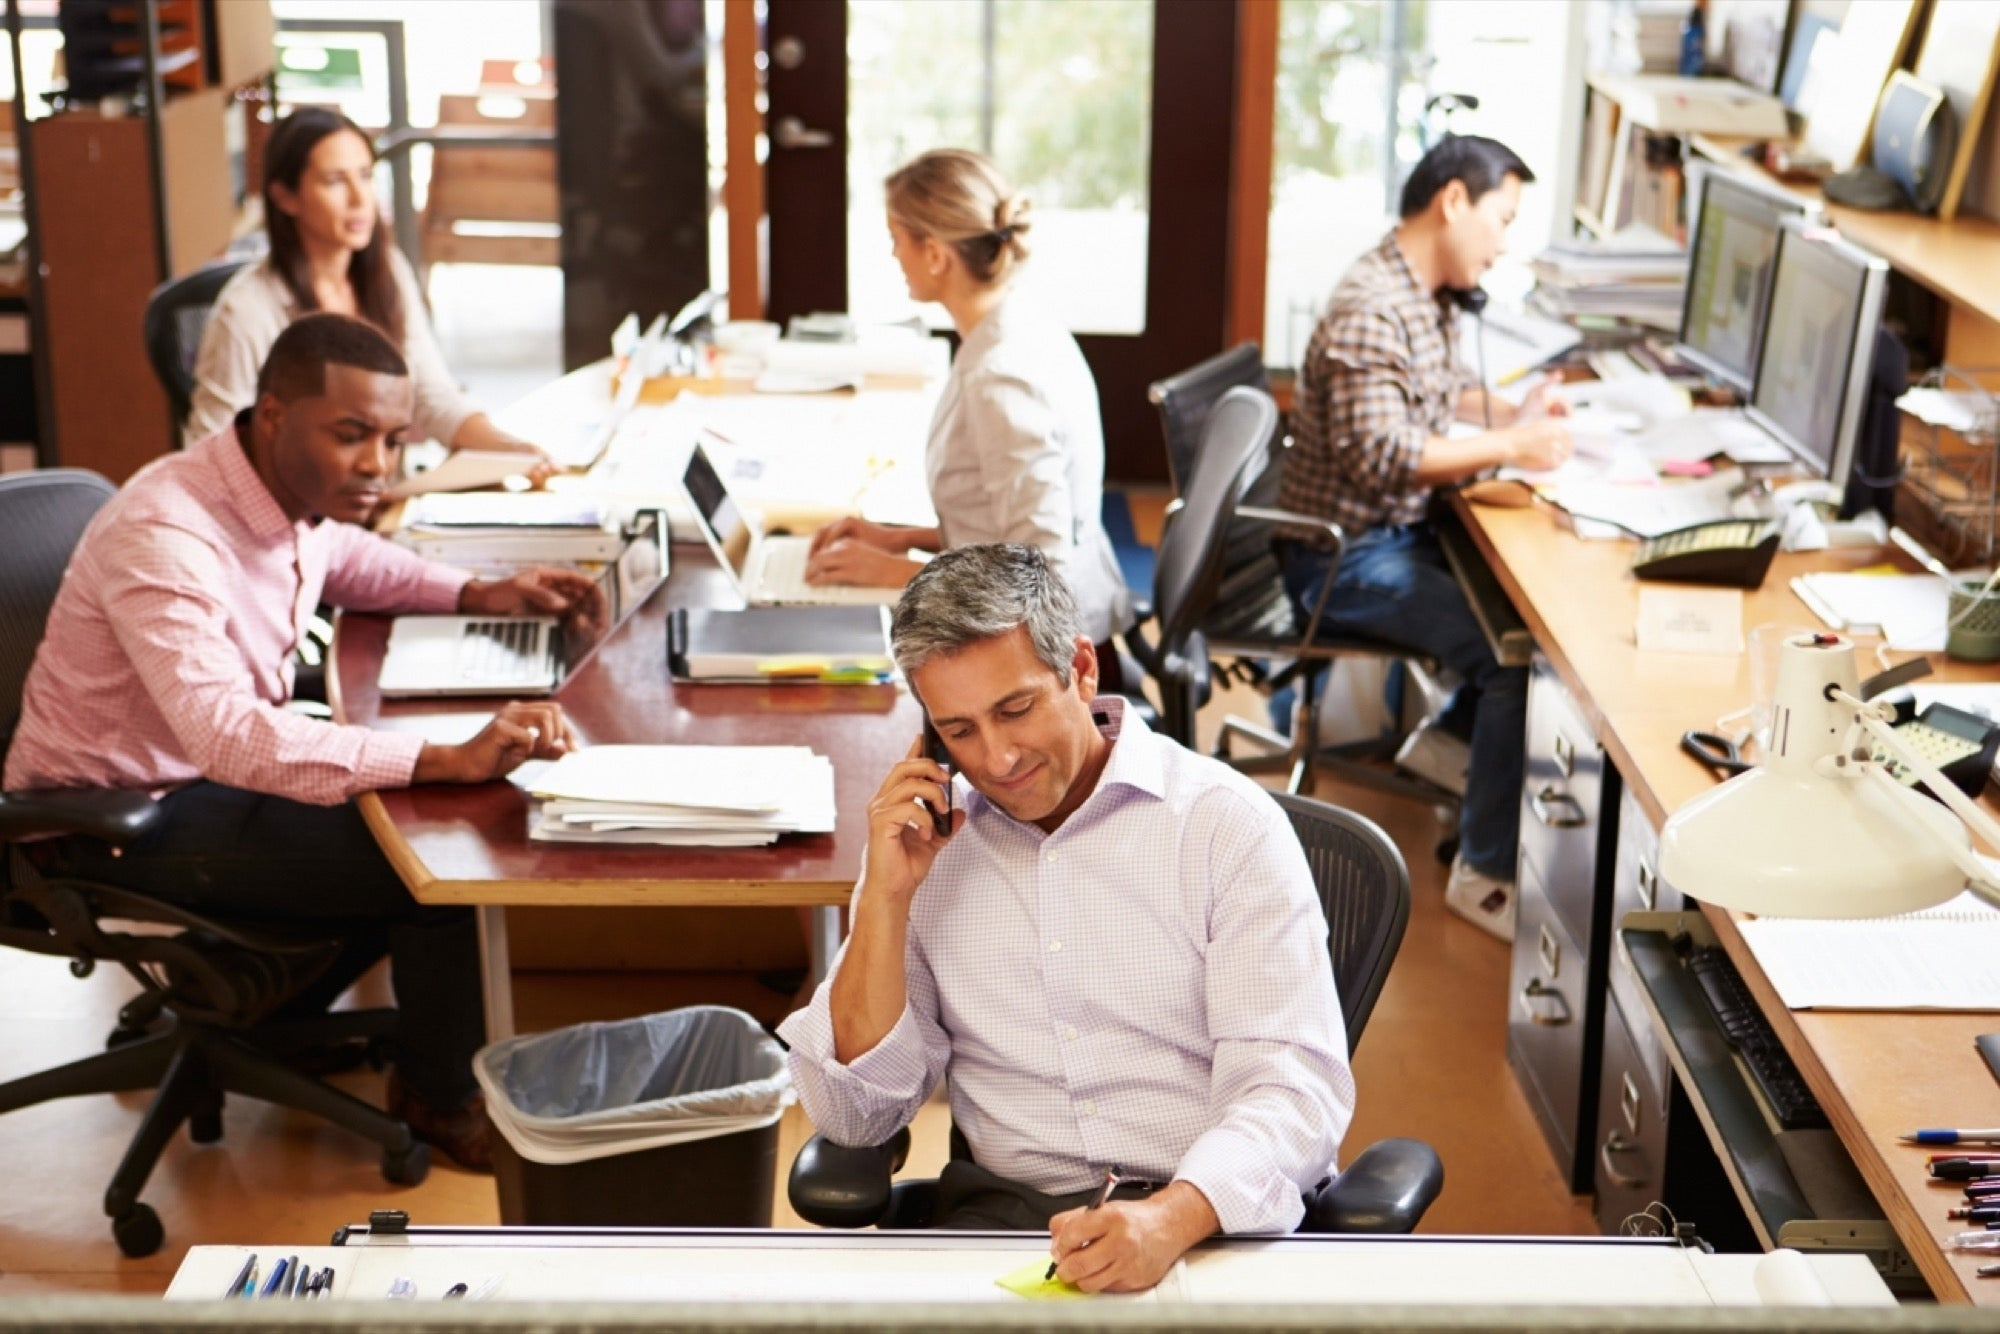 It's Official: Open Plan Offices Kill Productivity